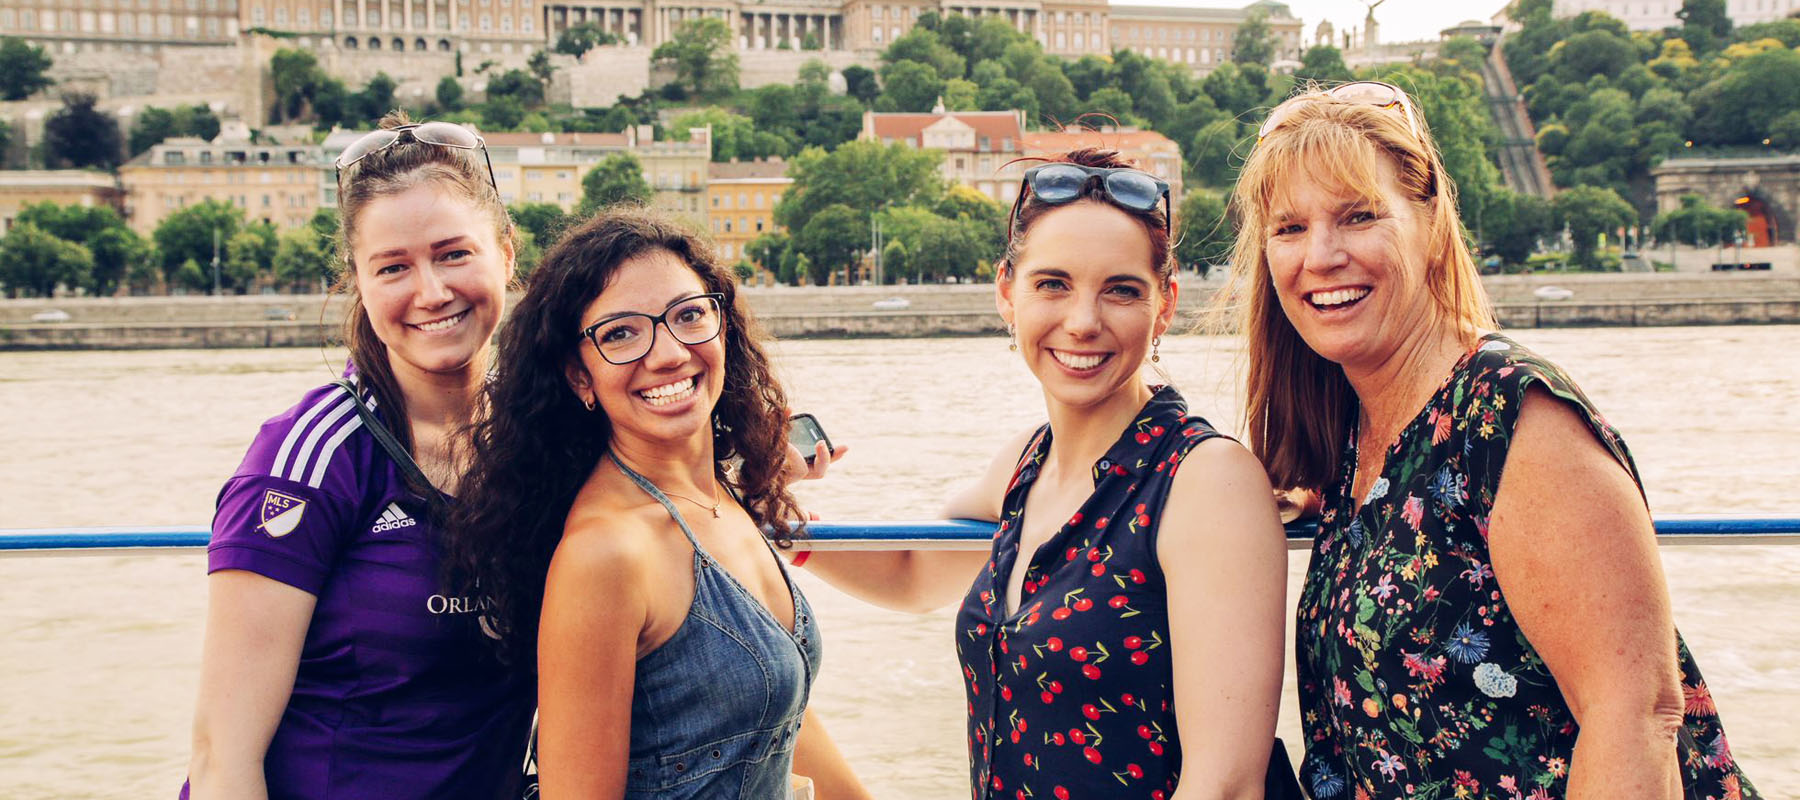 29 OR OLDER? APPLY FOR OUR NEW PROGRAM: RECONNECT HUNGARY 29+